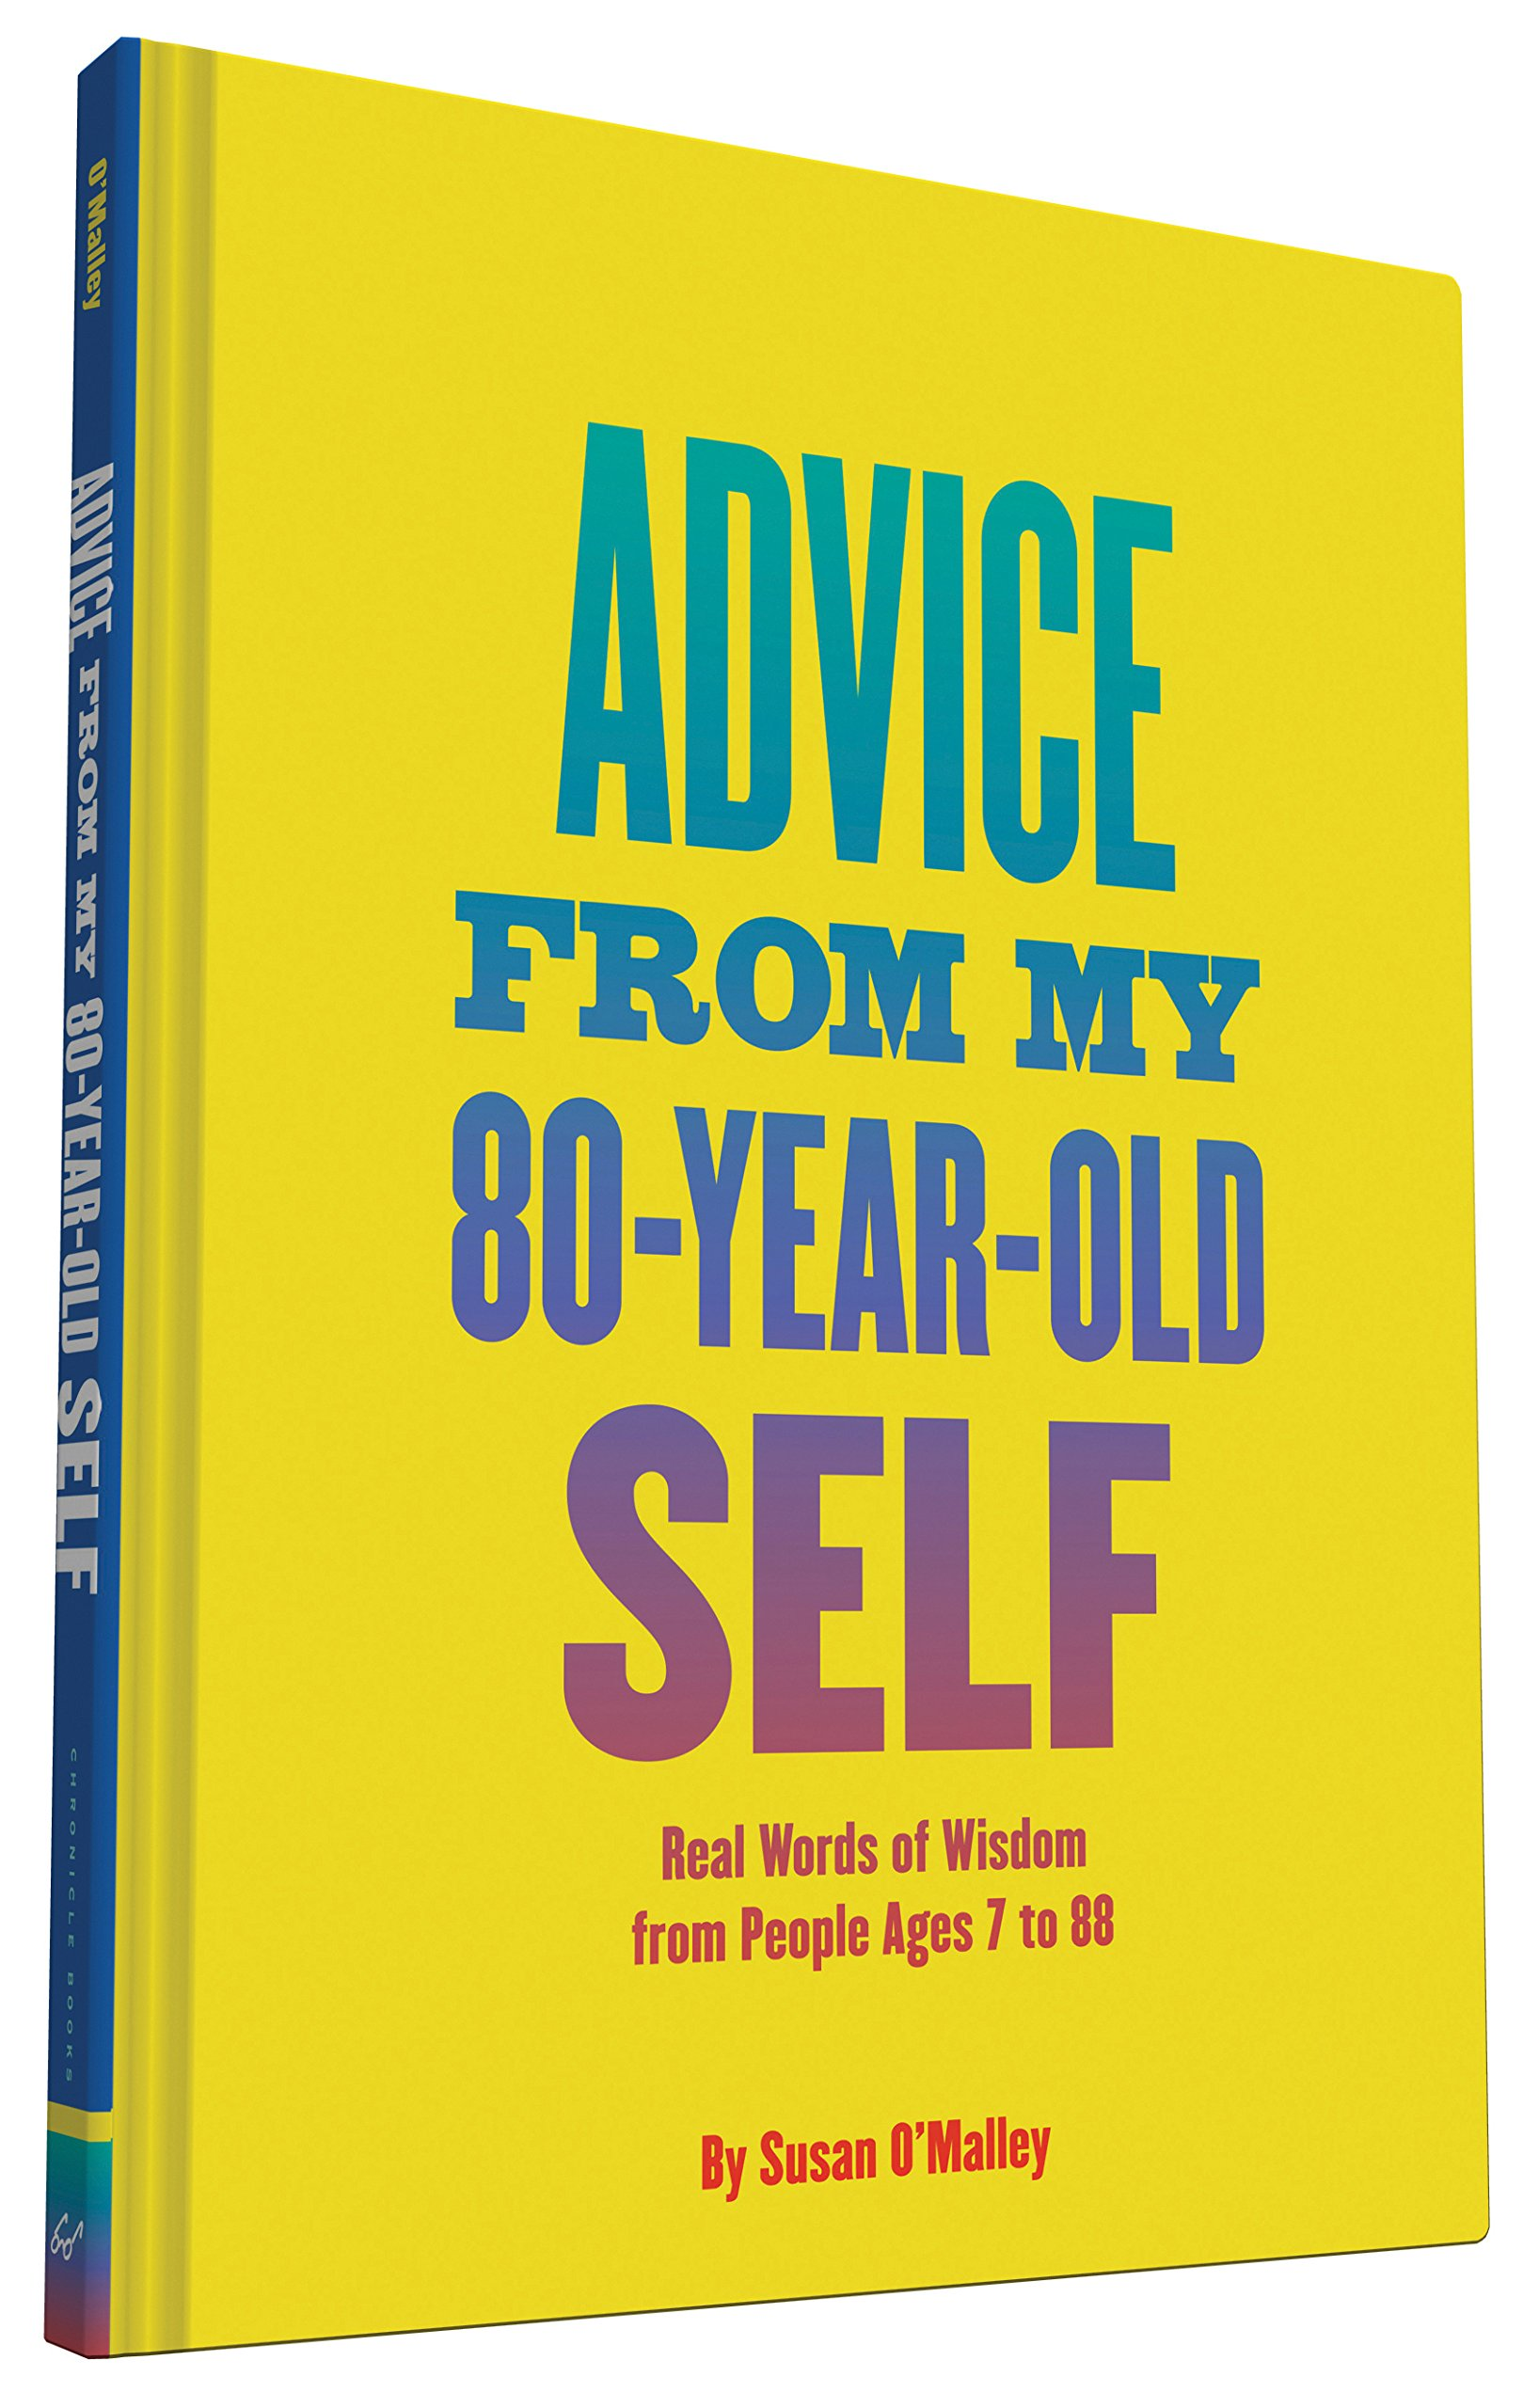 Real Words of Wisdom from People Ages 7 to 88 Advice from My 80-Year-Old Self